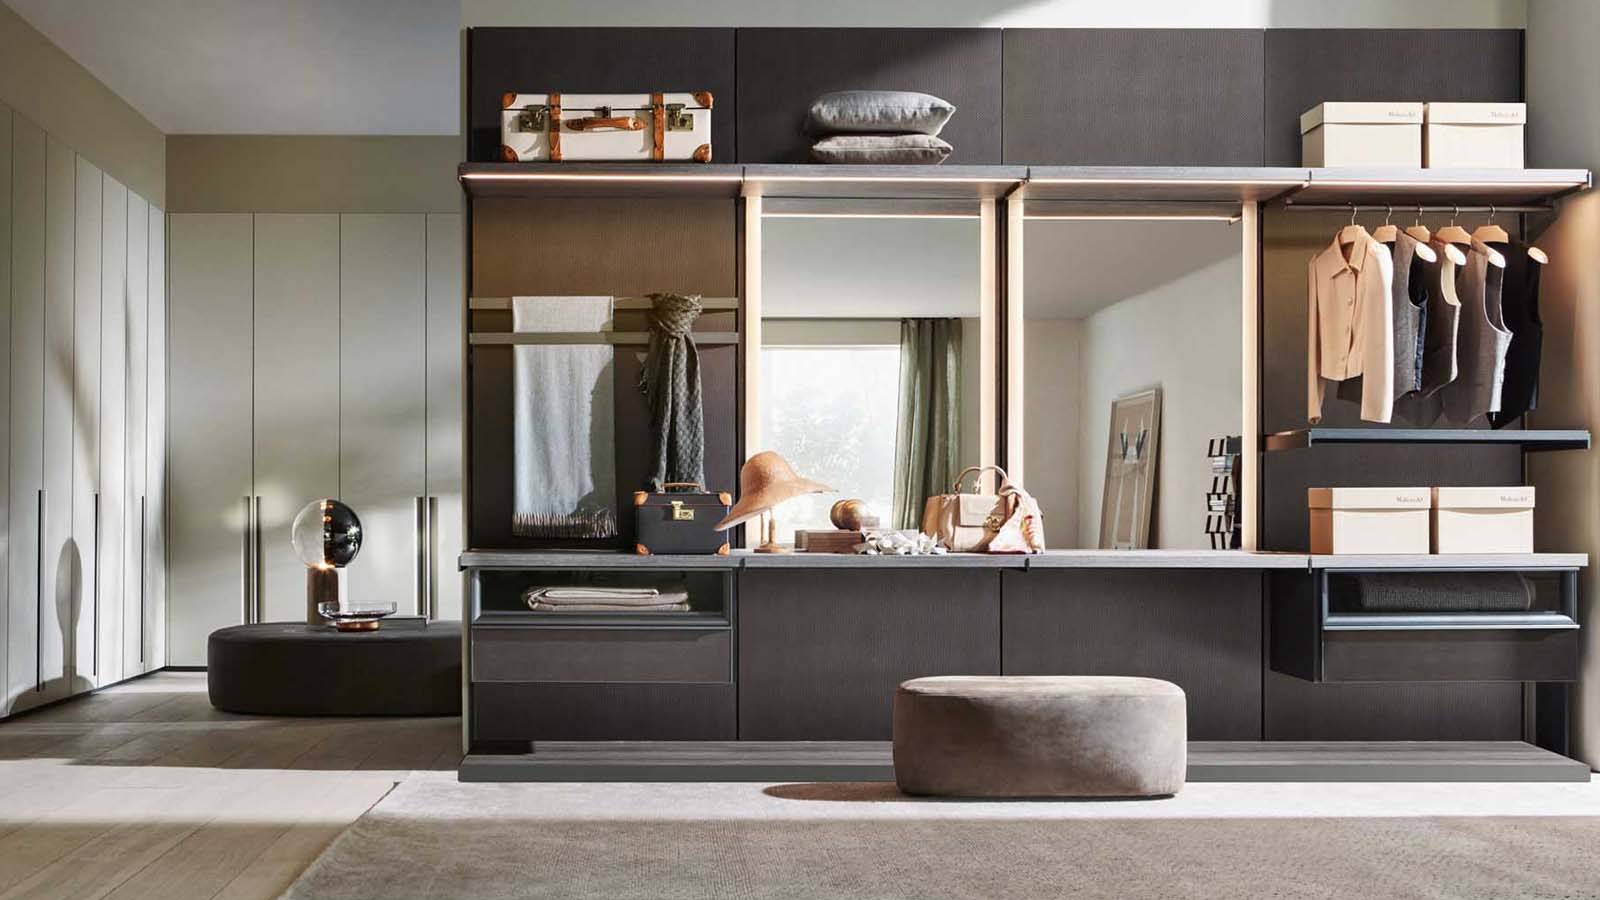 design walk-in closet Master Dressing Vincent van Duysen